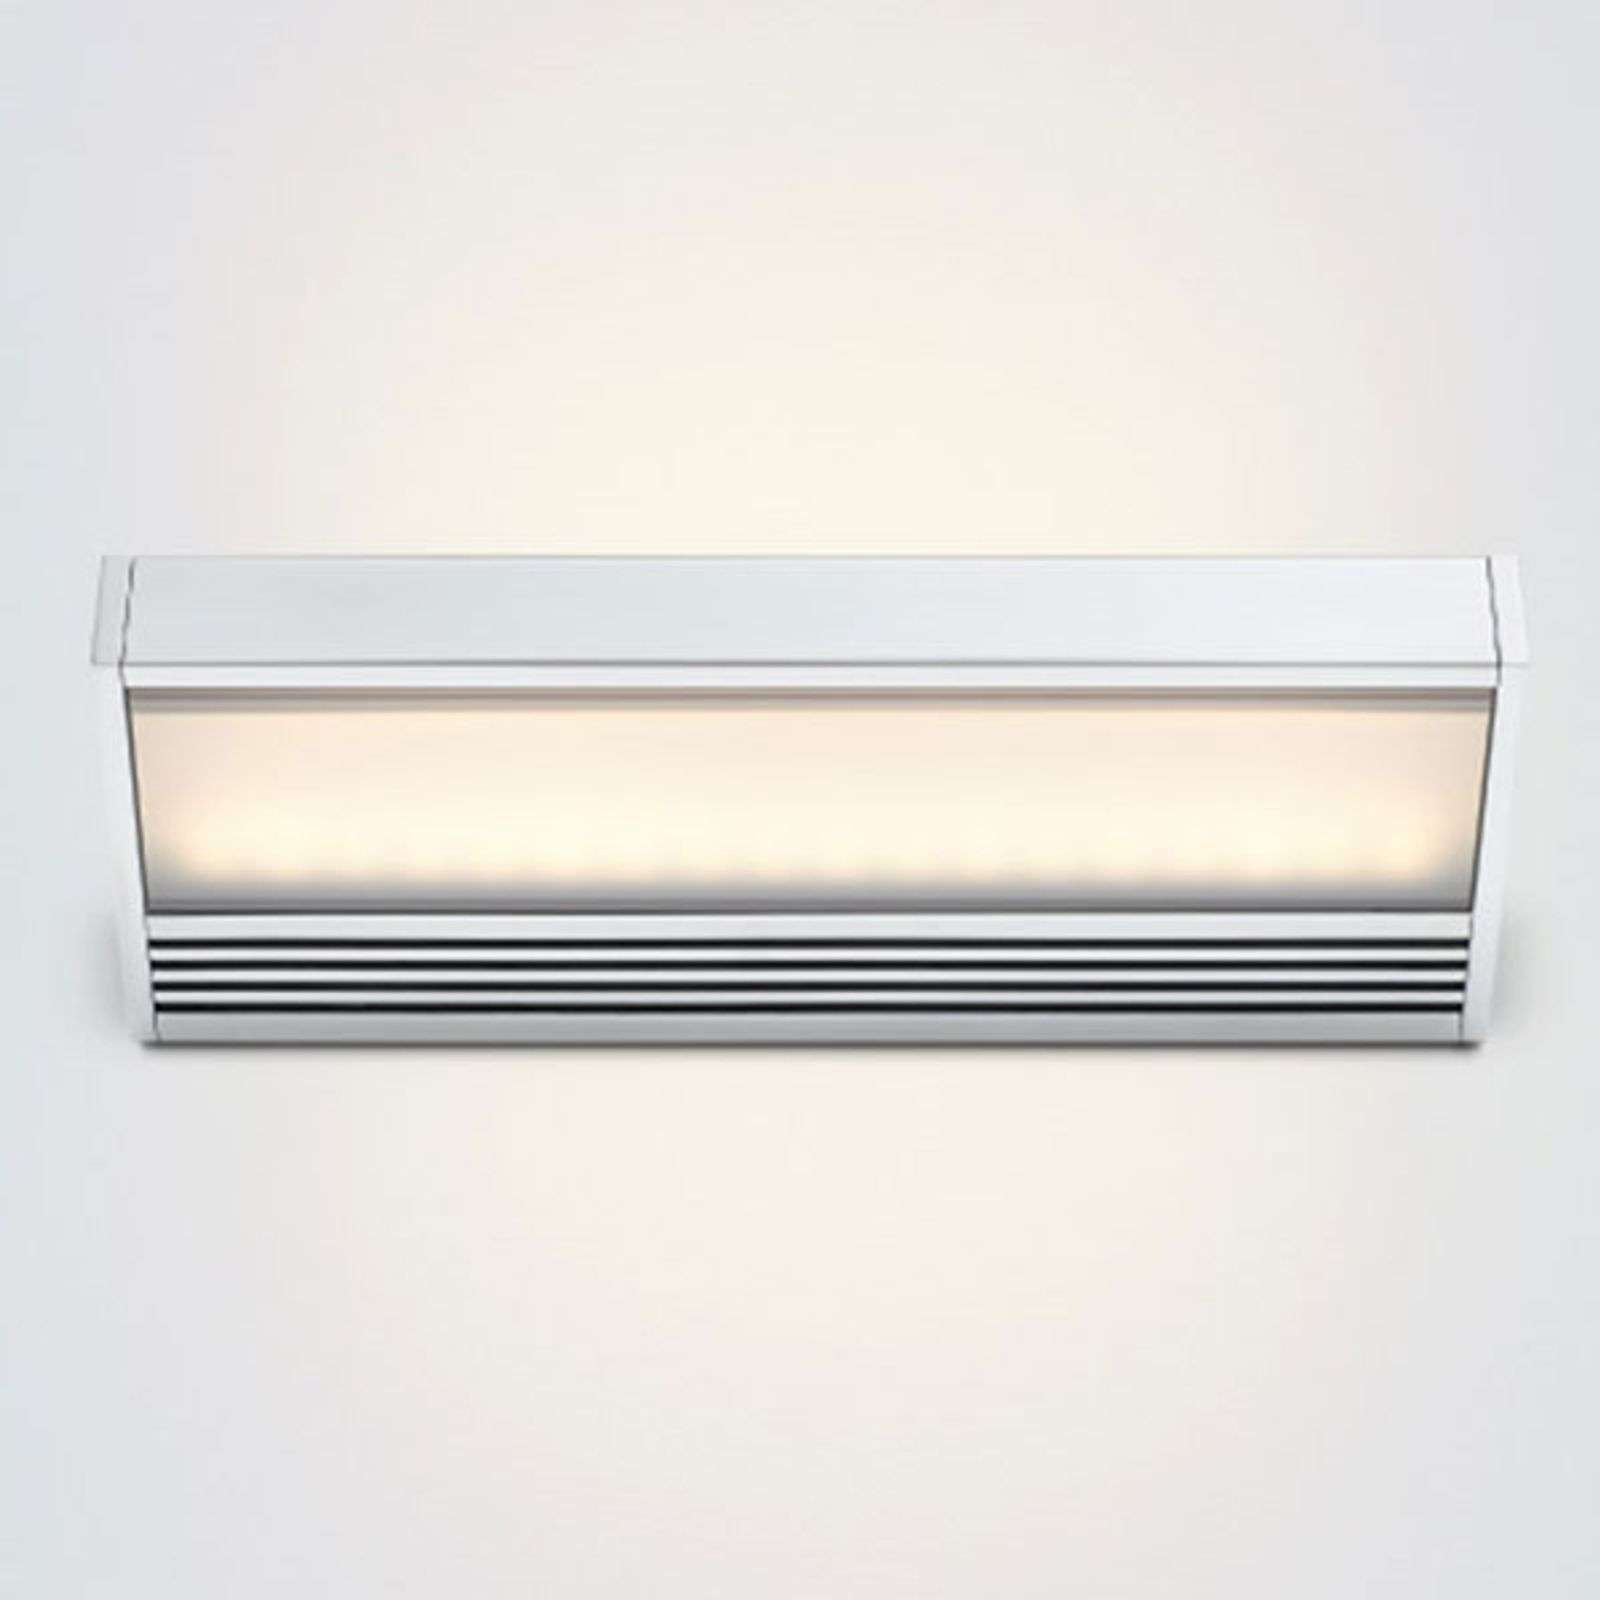 SML - applique LED in alluminio lucido